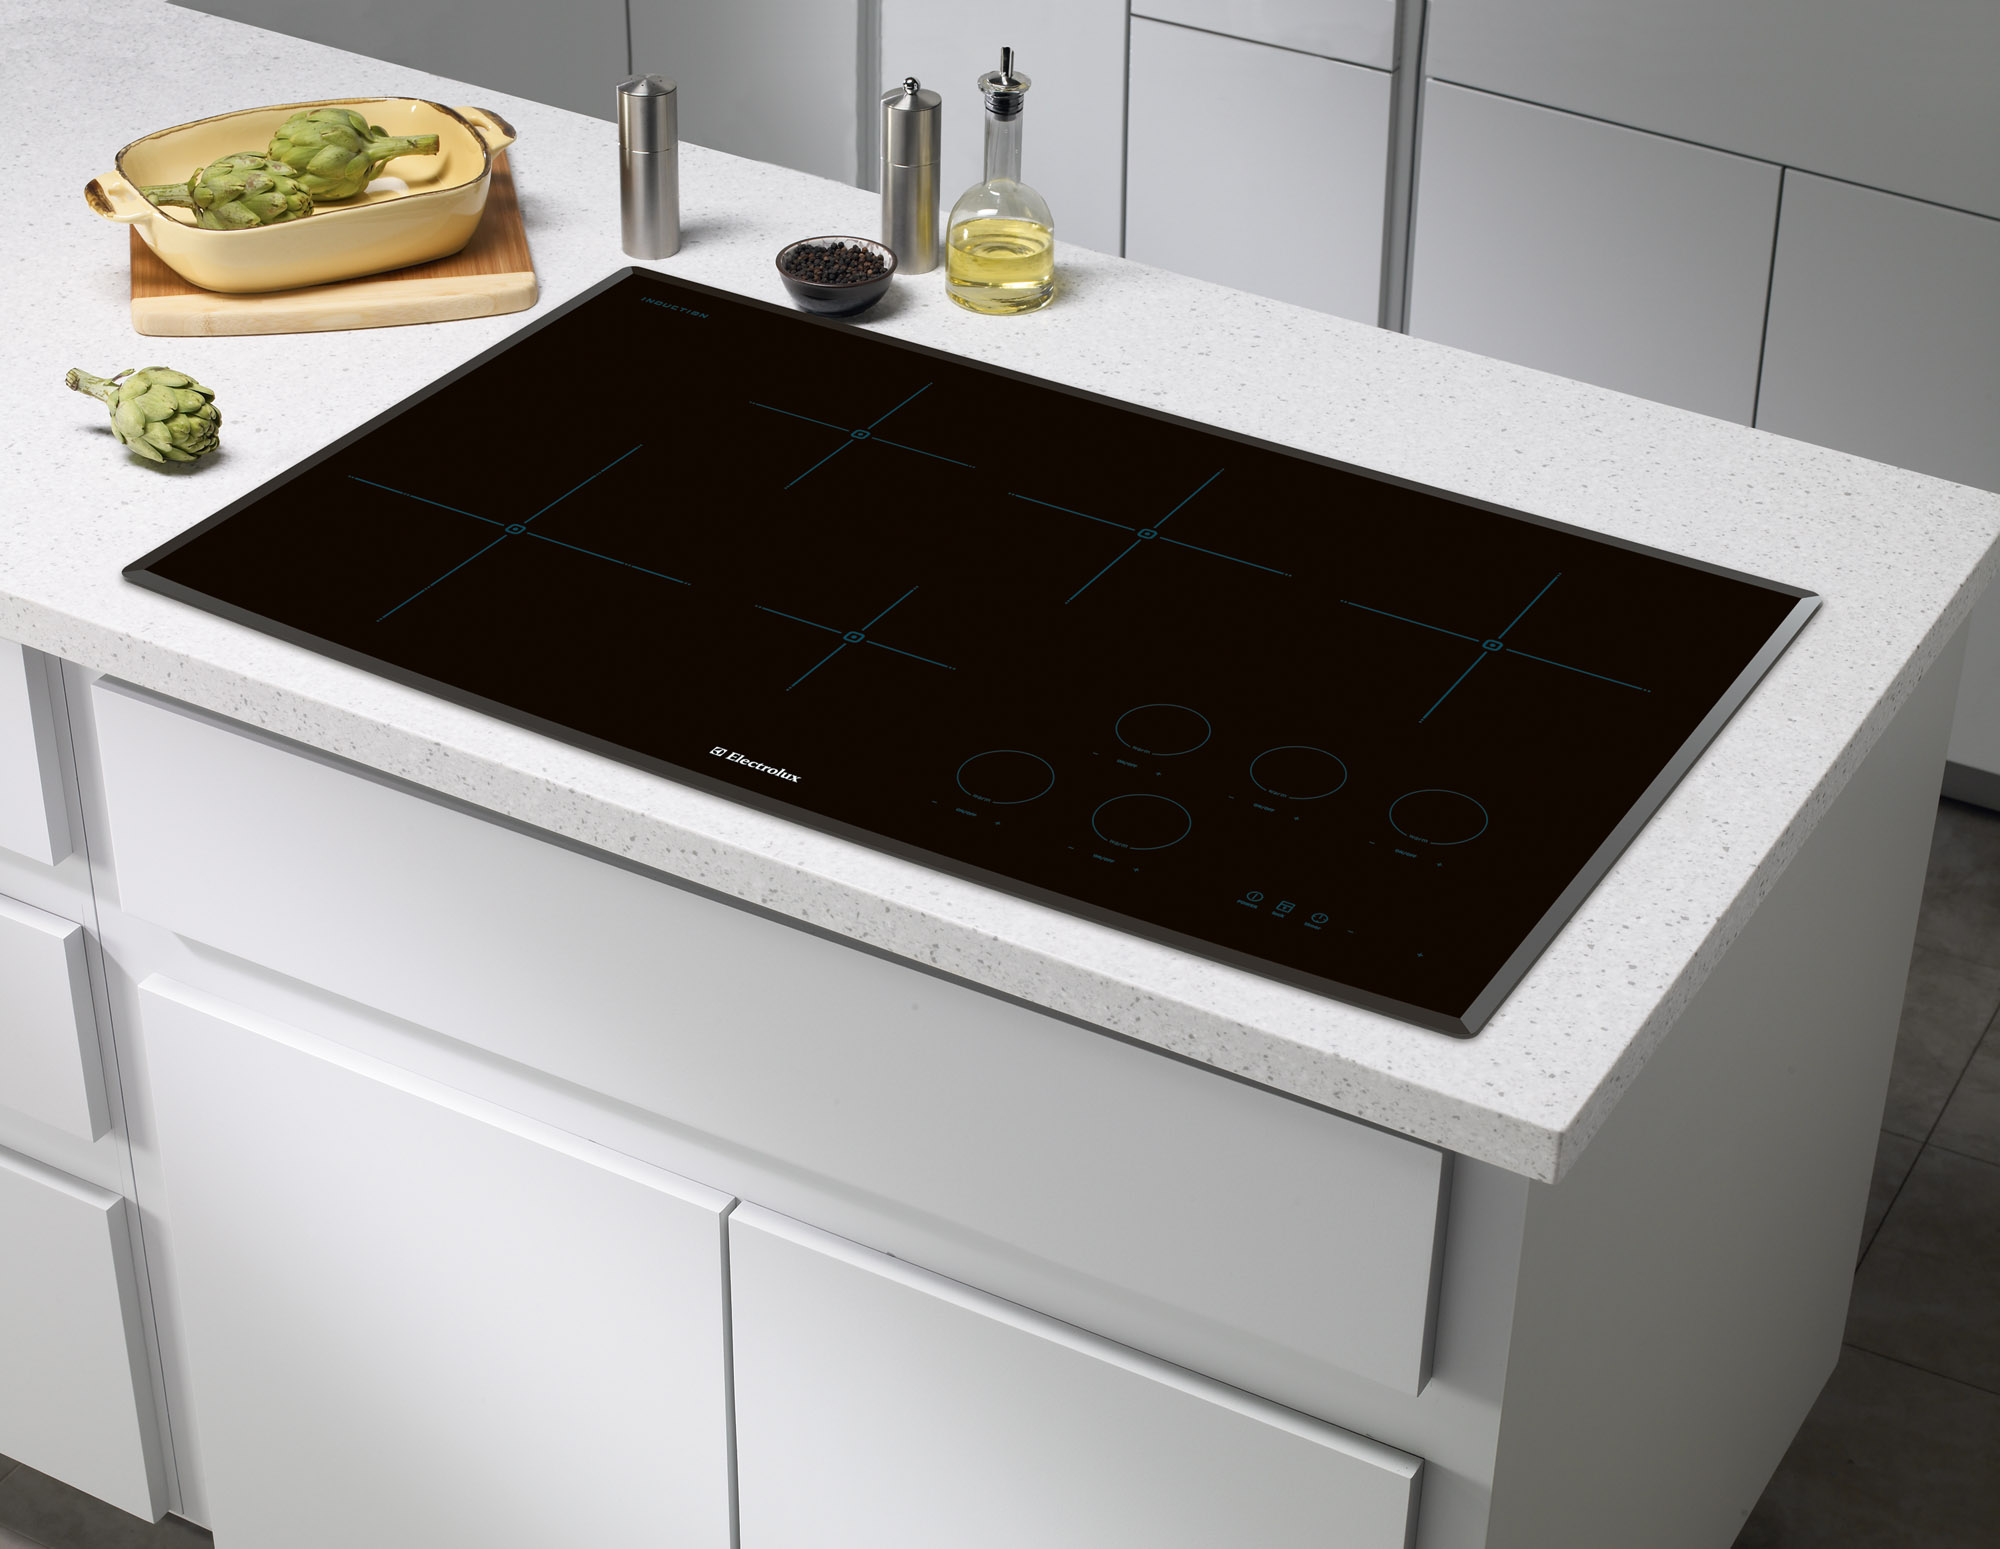 Wall oven under cooktop - Electrolux Ew36ic60lb Induction Cooktop